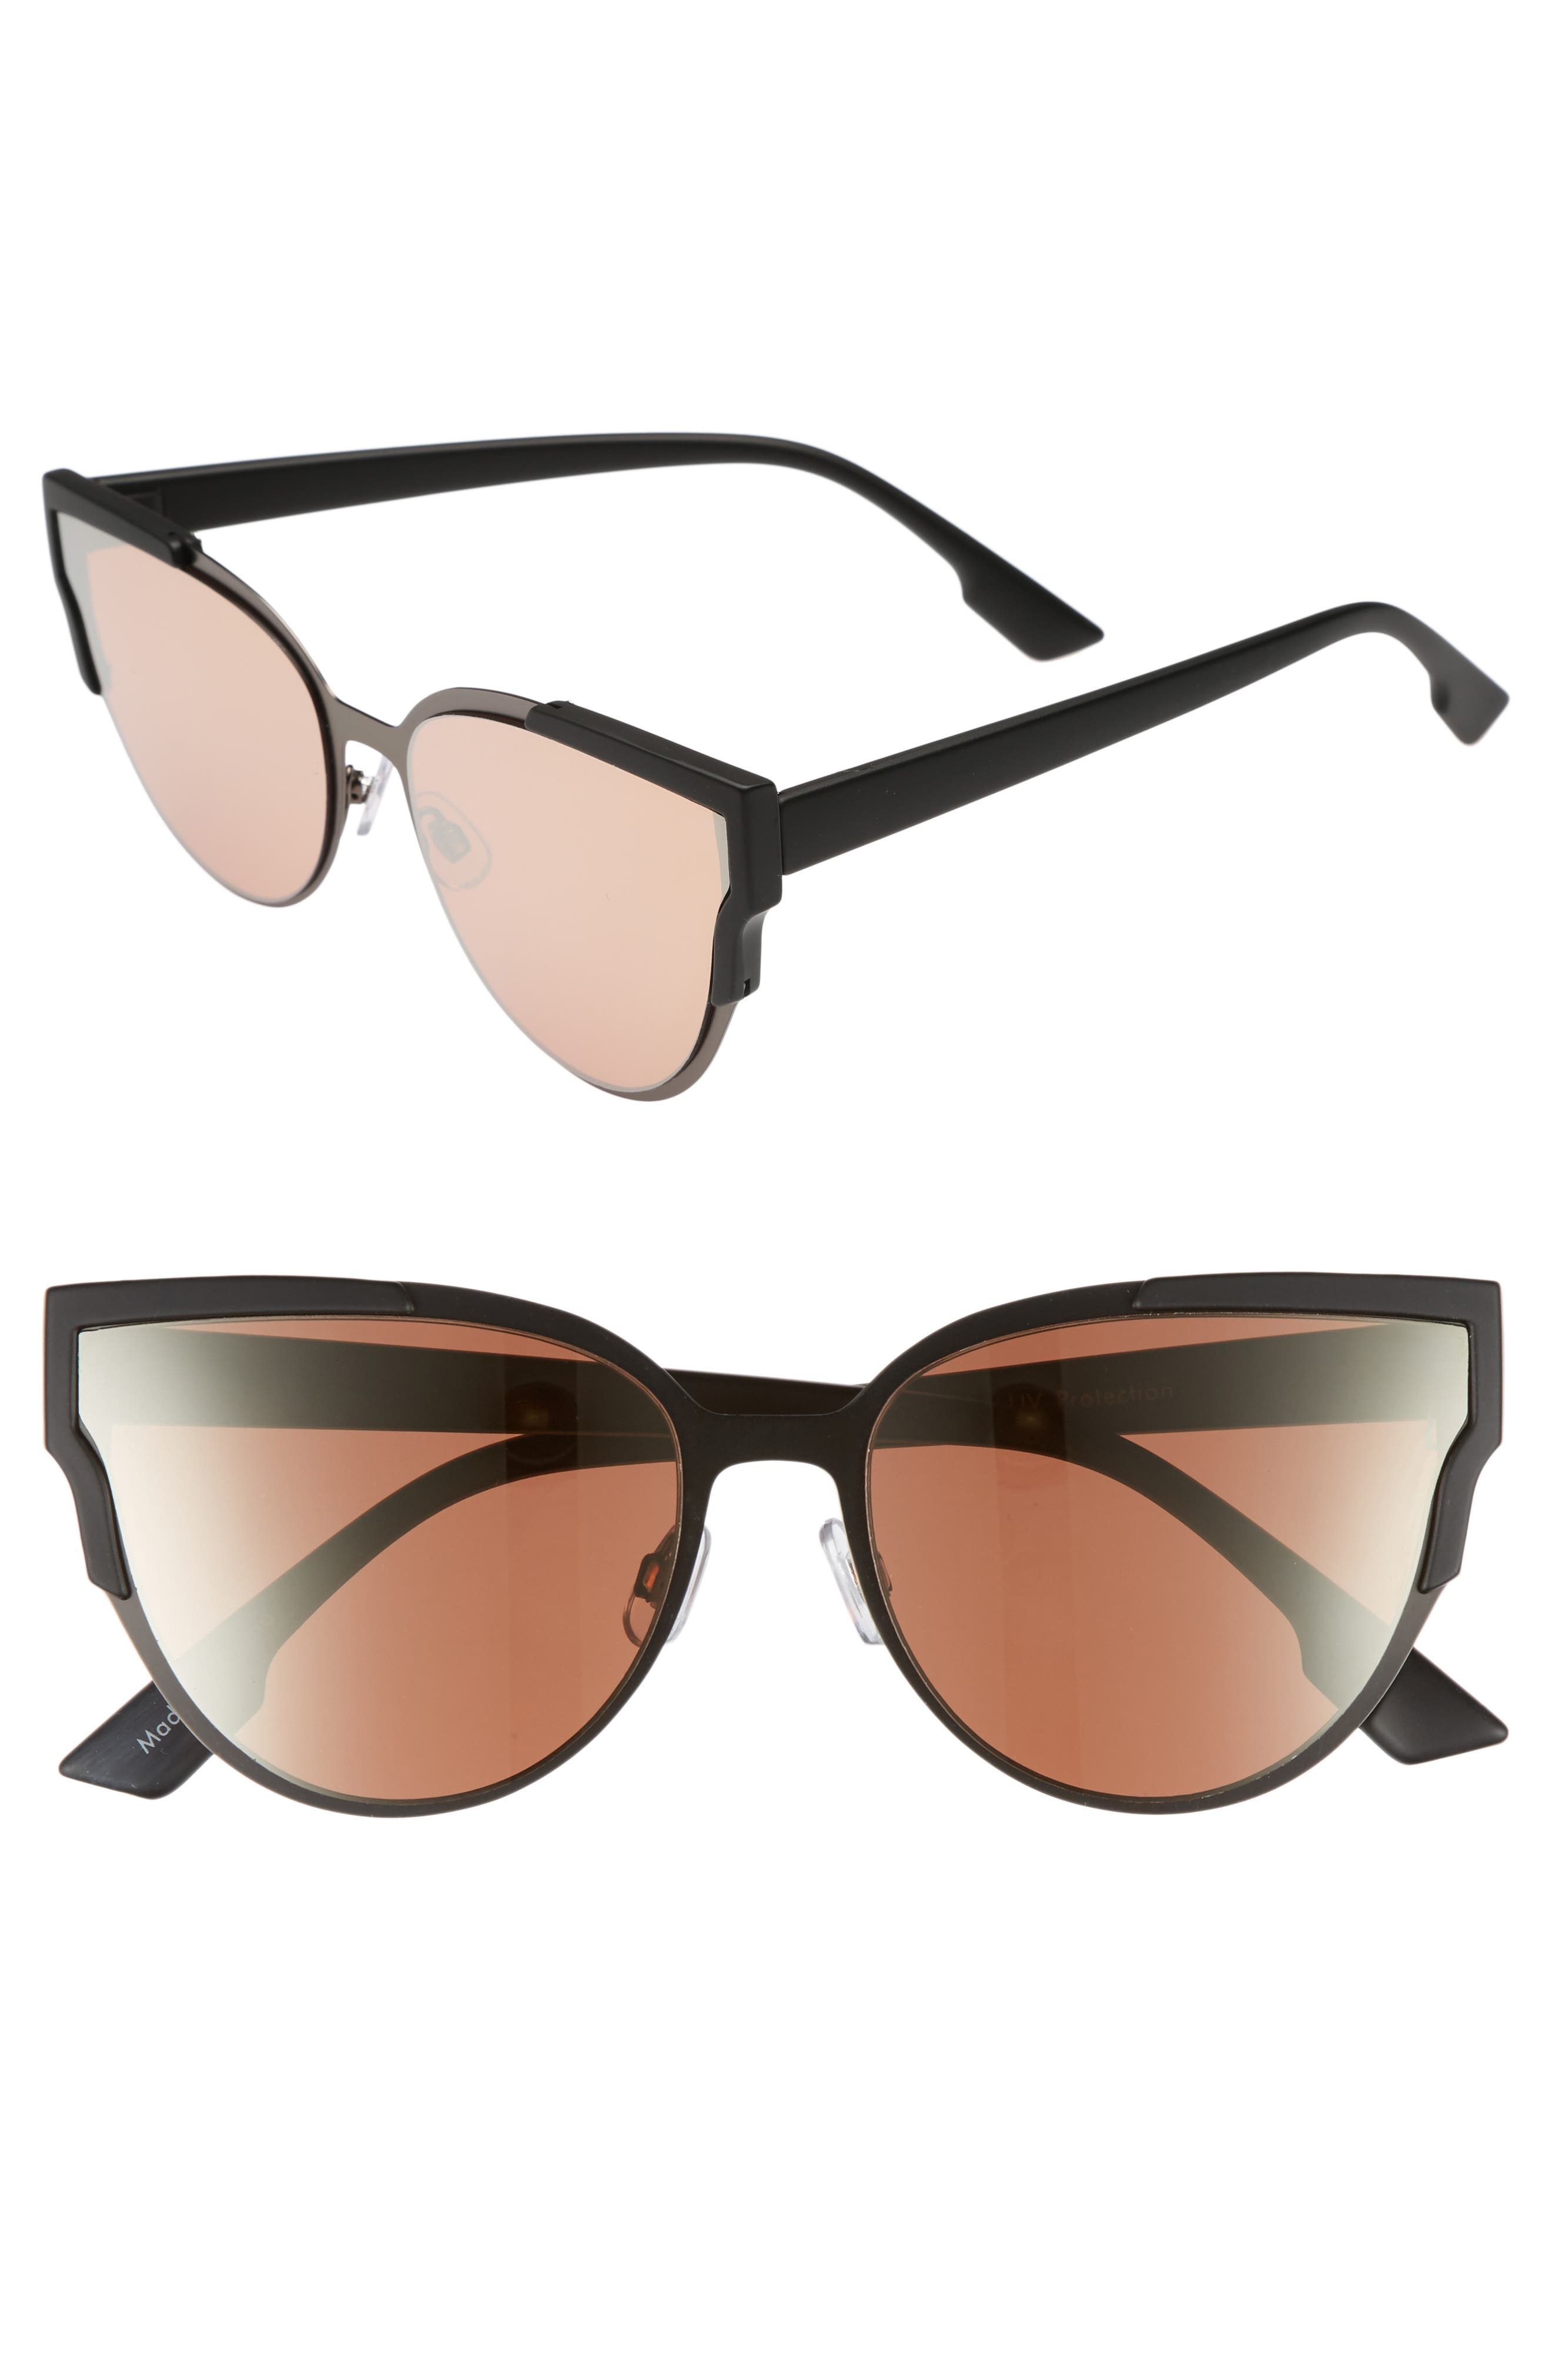 59mm Cat Eye Sunglasses,                         Main,                         color, 001